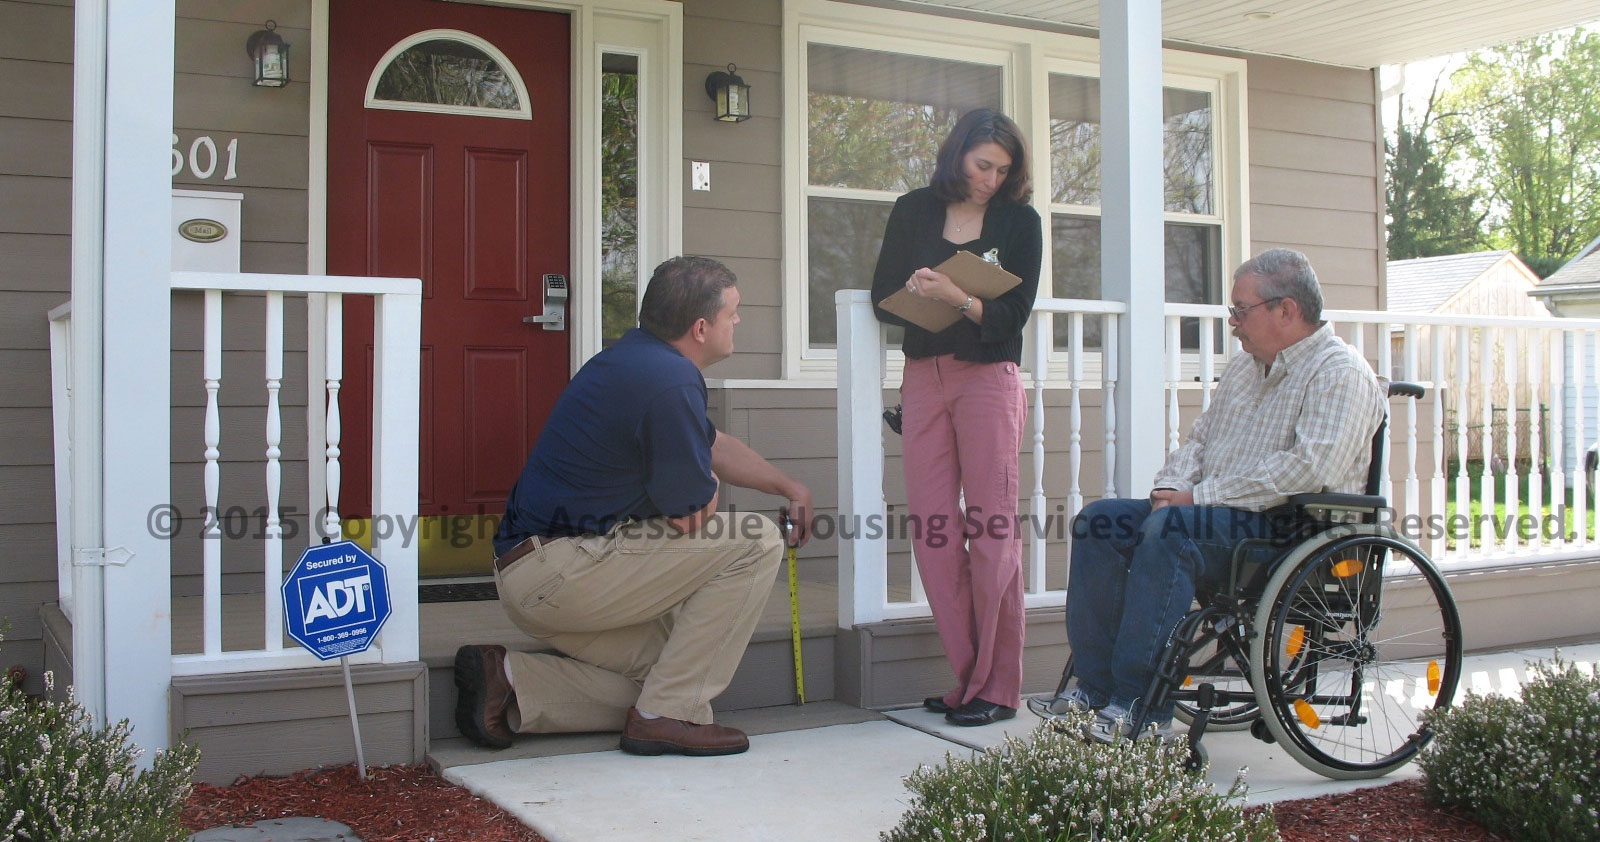 Measuring wheelchair accessible home entrance accessible for How to find handicap accessible housing